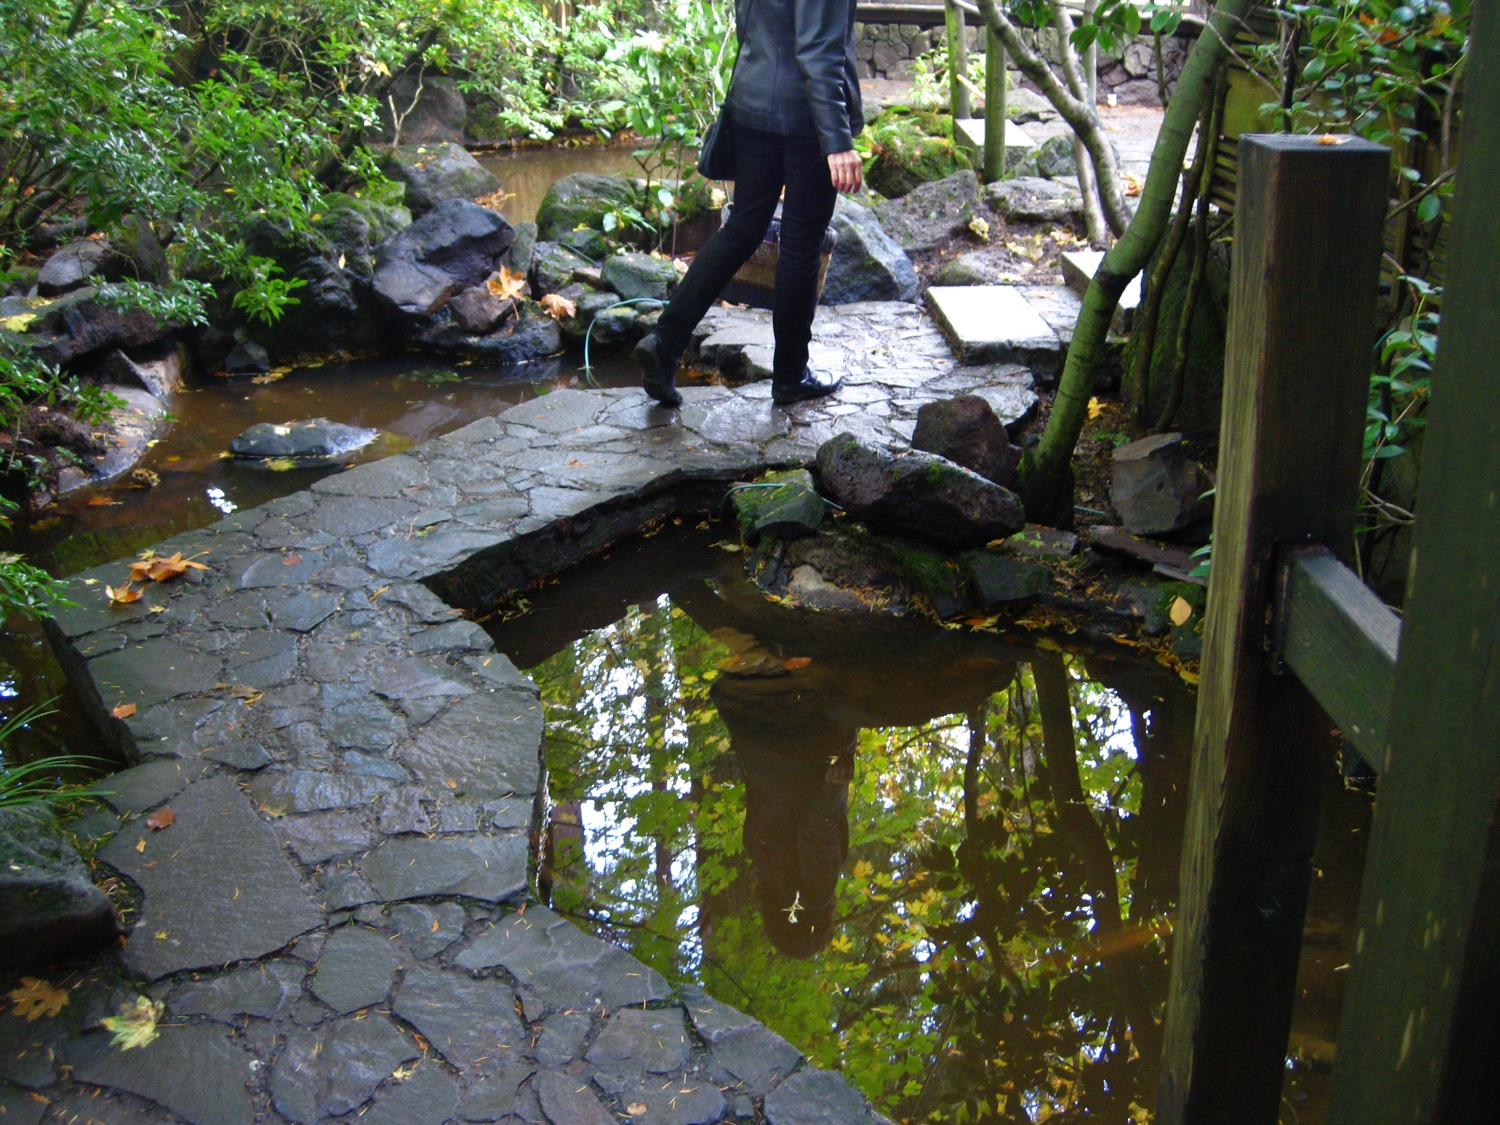 June Anderson in Natural Garden at Portland Japanese Garden